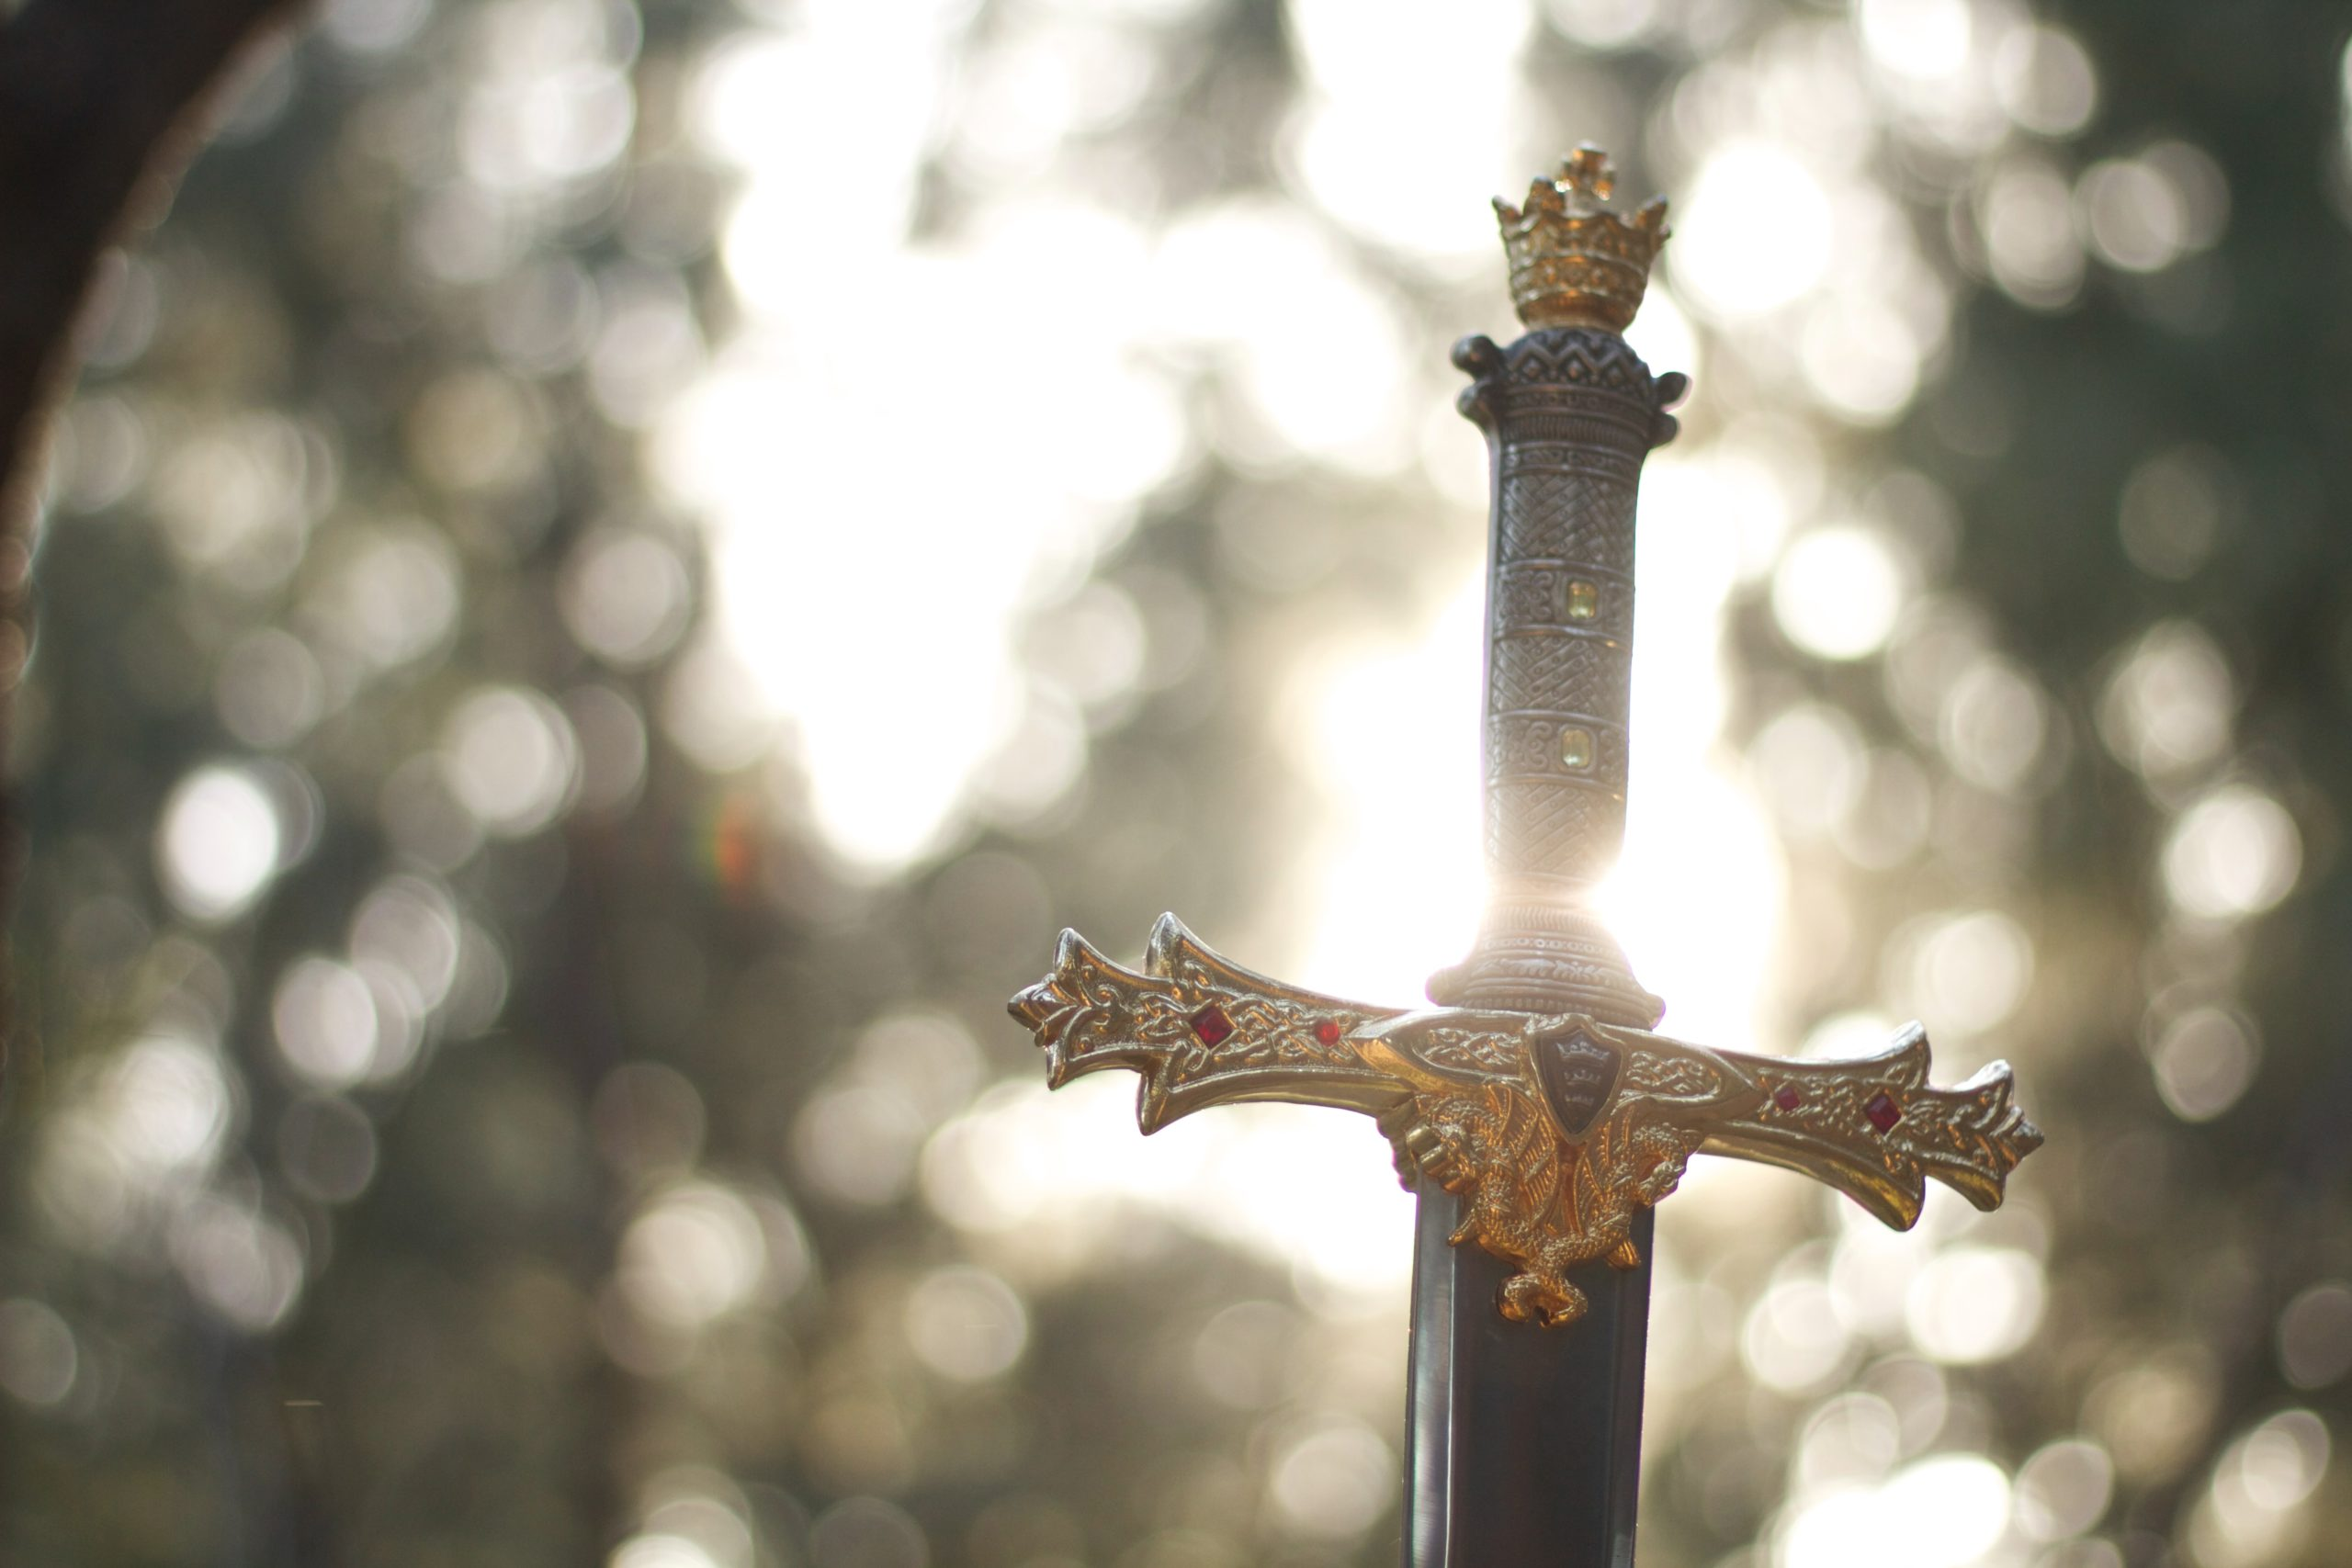 Matthew 18: The Keys and the Sword